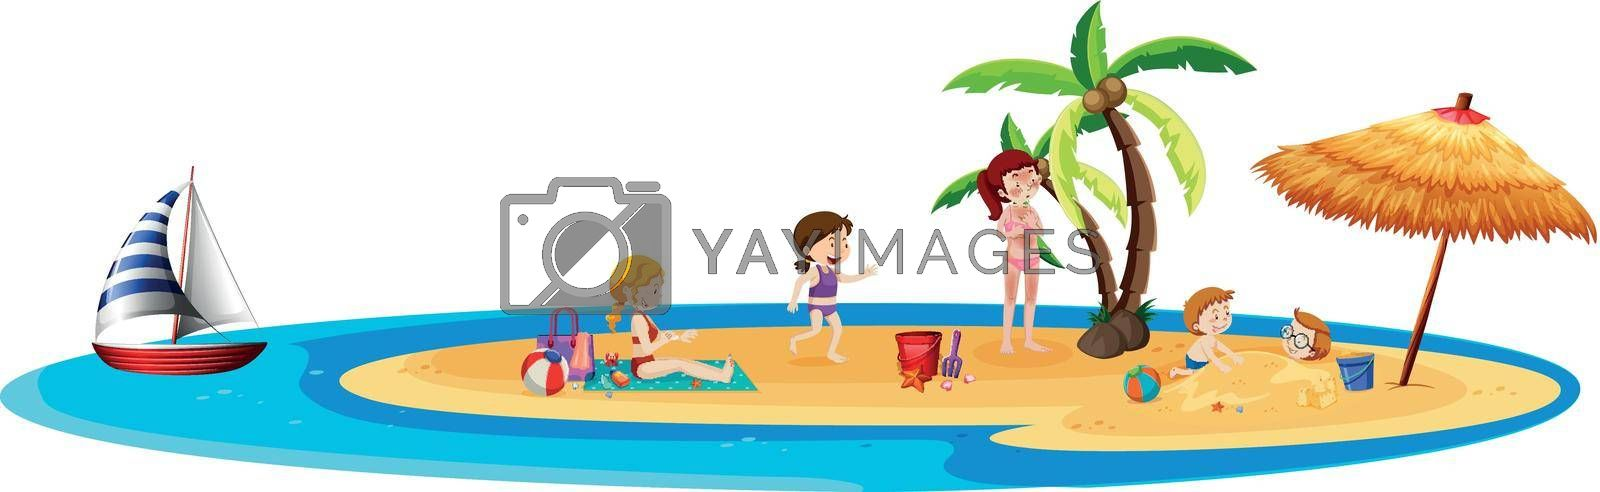 Royalty free image of People on the island by iimages